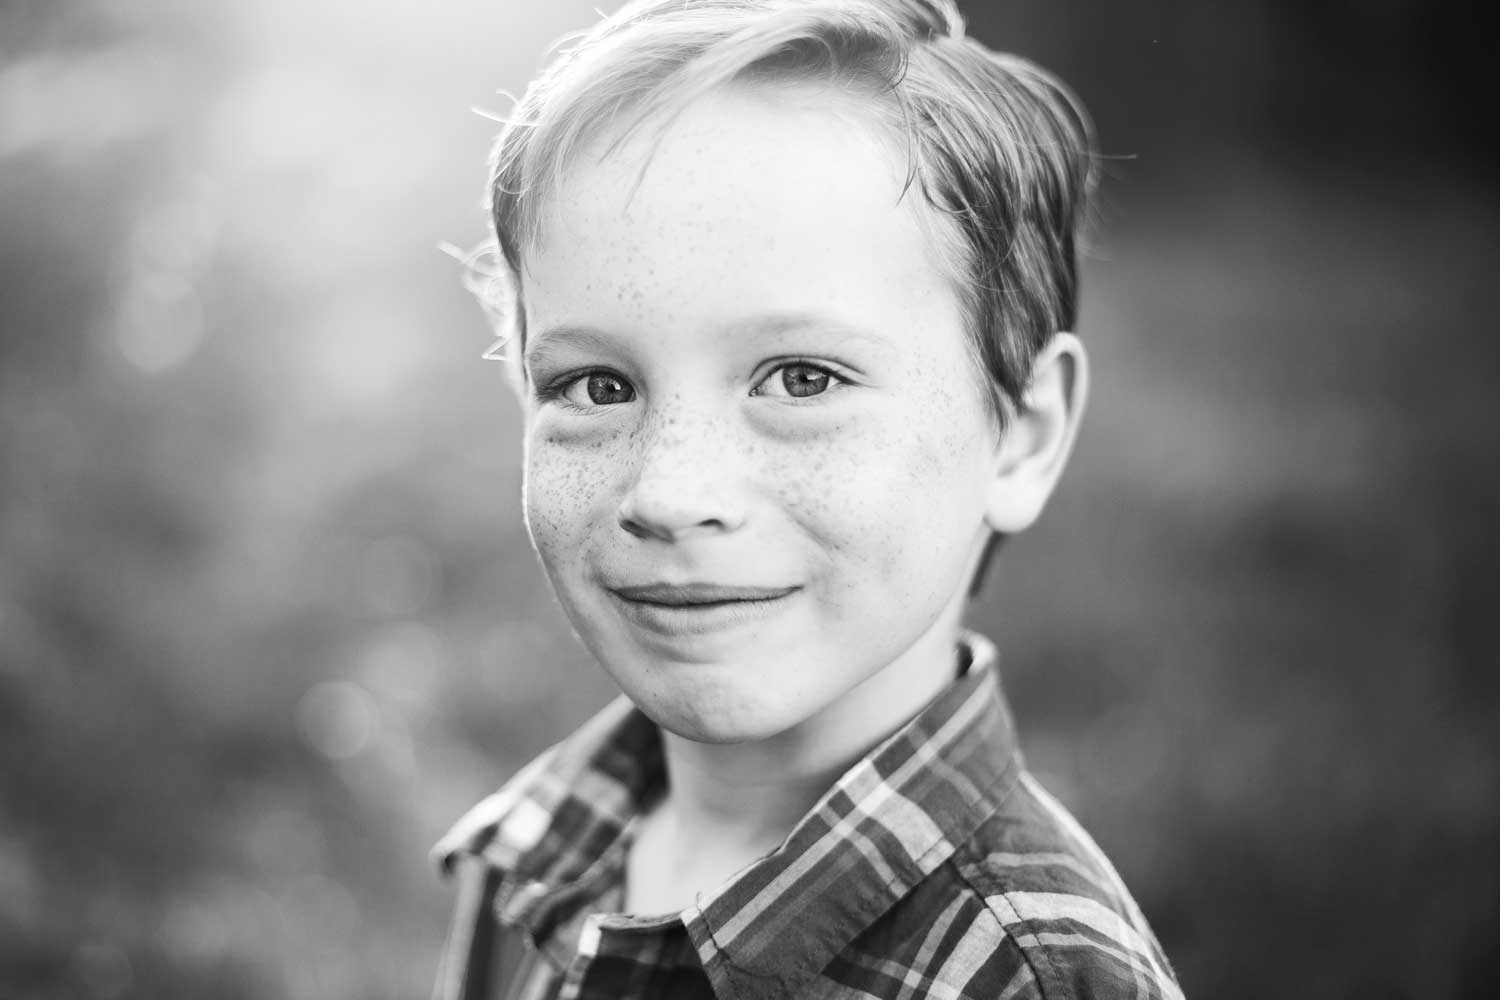 A boy smiles for the camera in Roseville, California during a photo session with Amy Wright Photography.